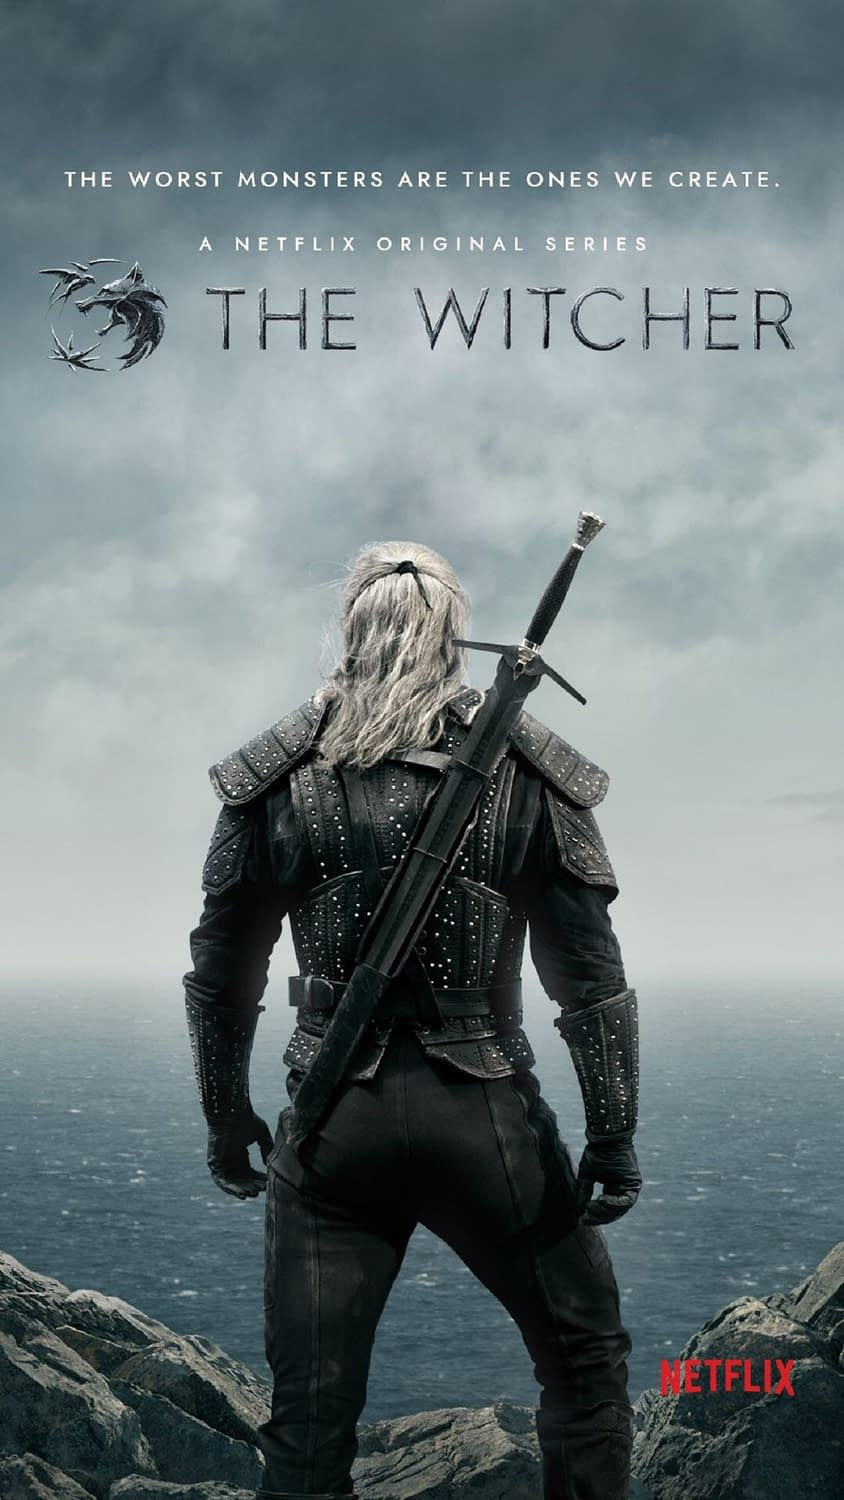 """The Witcher"" Offers New Looks at Anya Chalotra's Sorceress Yennefer [PREVIEW]"